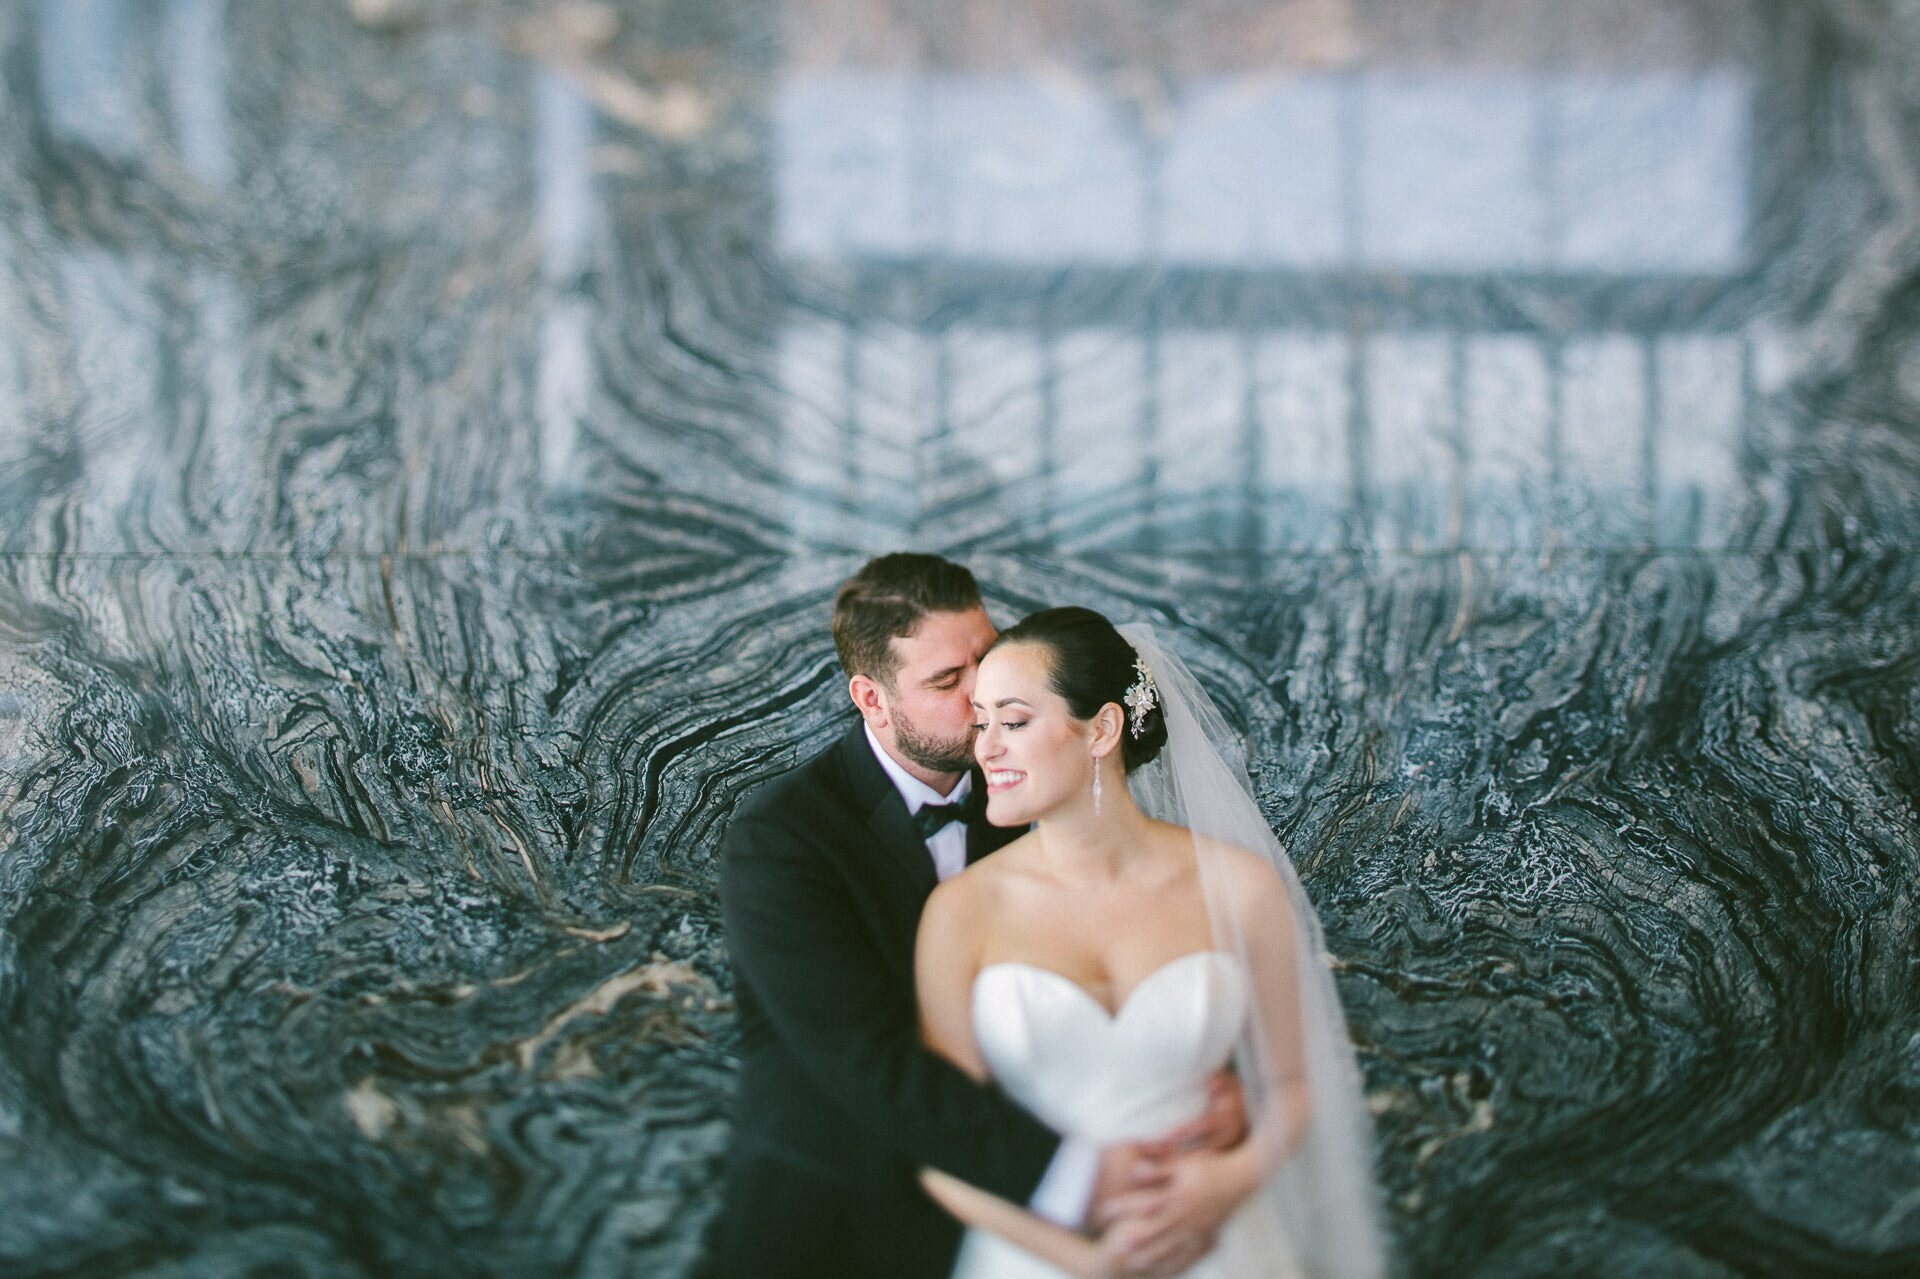 Playhouse State Theater Wedding Photographer in Cleveland 1 27.jpg